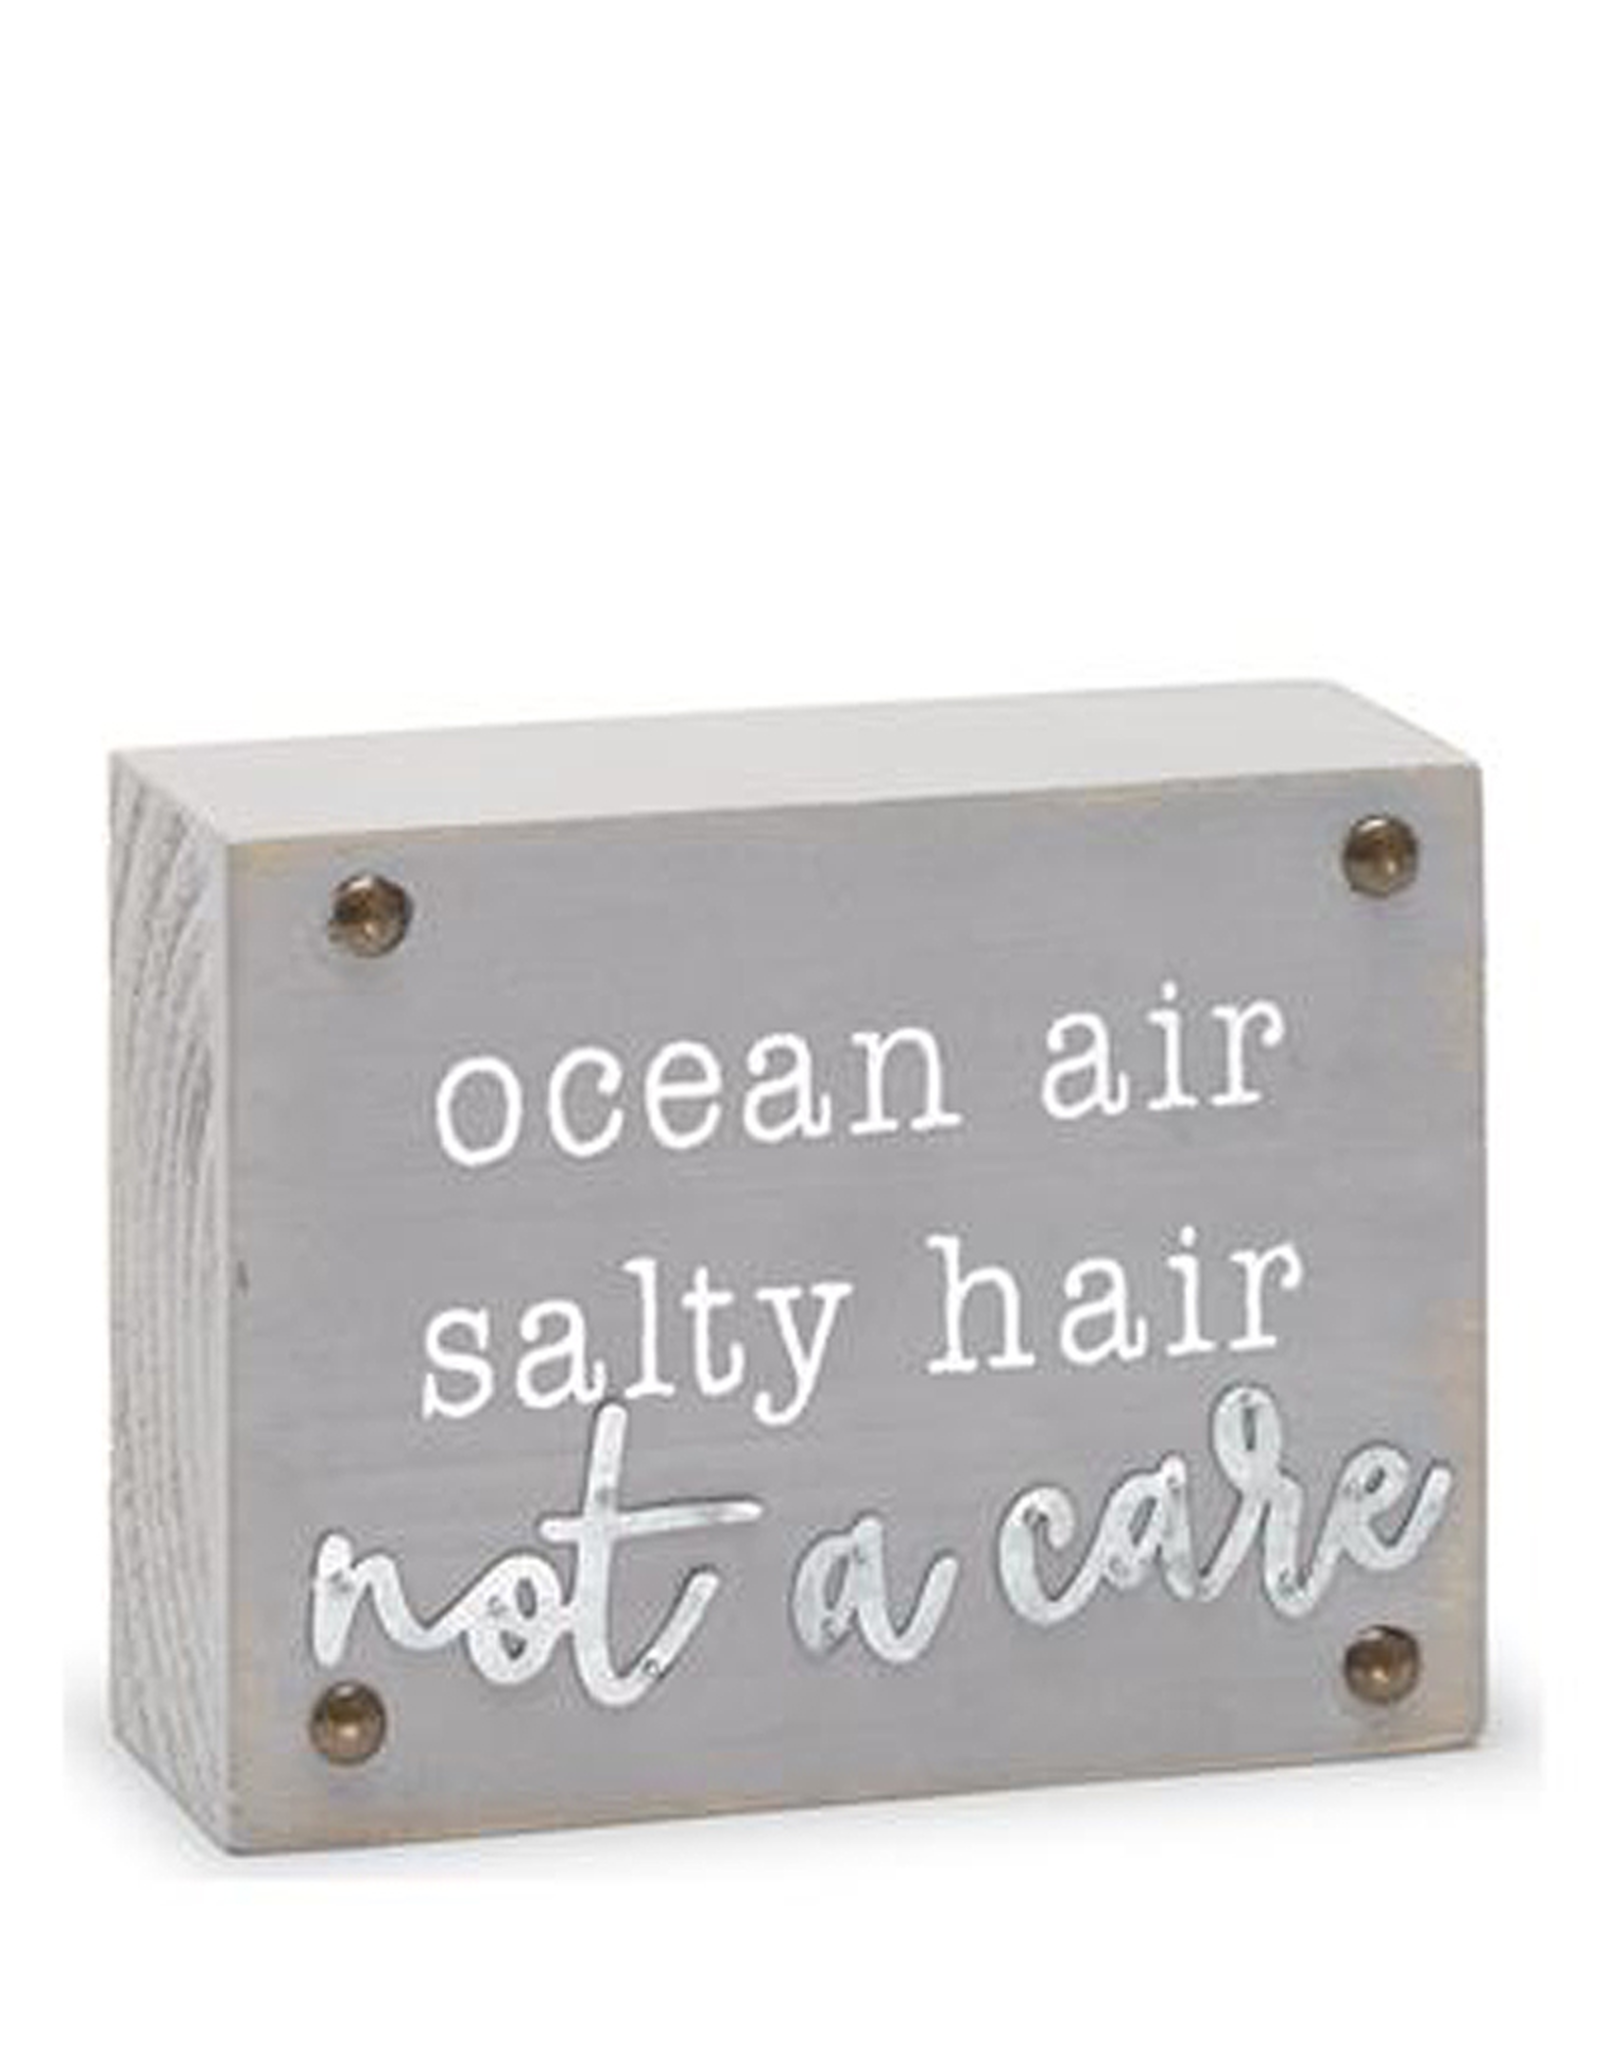 Mud Pie Beach House Sentiment Block Plaque w Ocean Air Salty Hair Not a Care